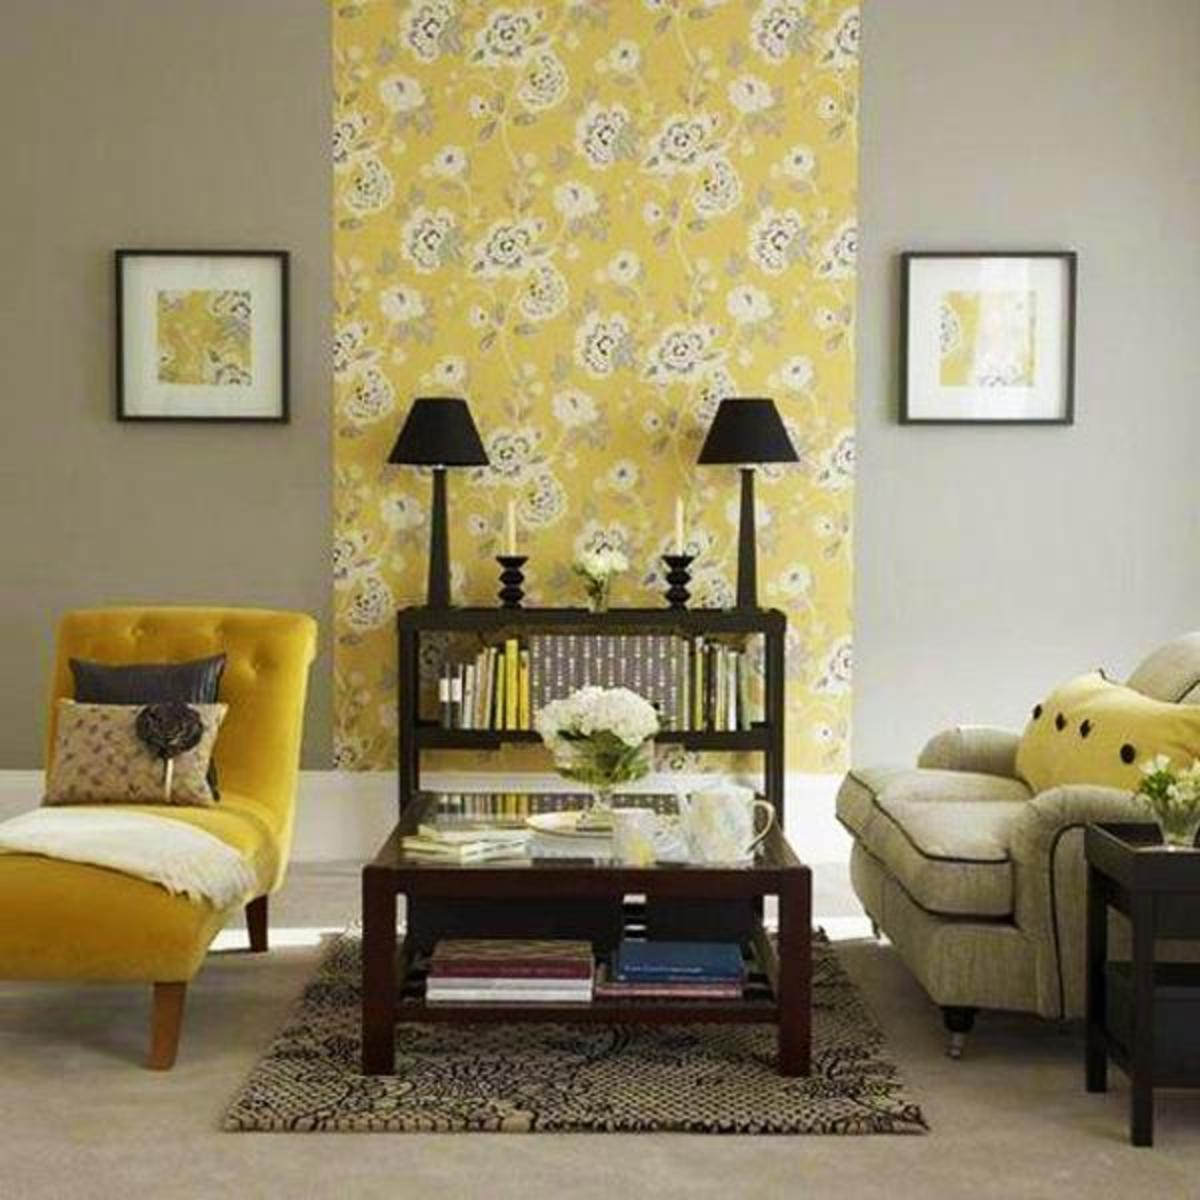 Wallpaper Versus Paint: Which to Choose?